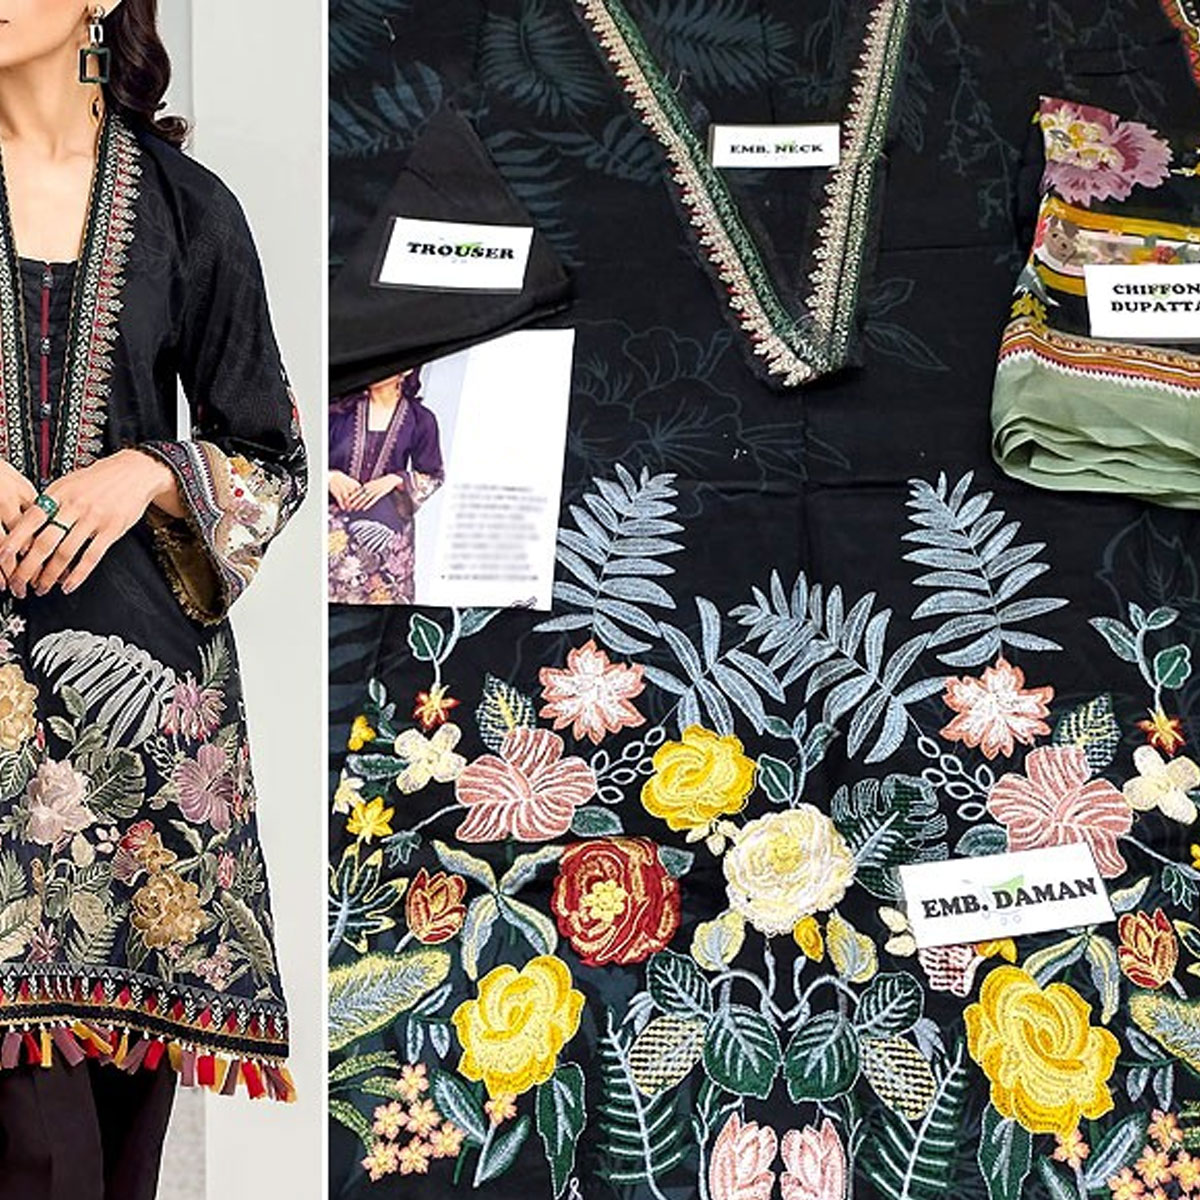 Lawn Embroidered Dress 2020 With Chiffon Dupatta  - (DRL-431) (UnStitched) Gallery Image 1